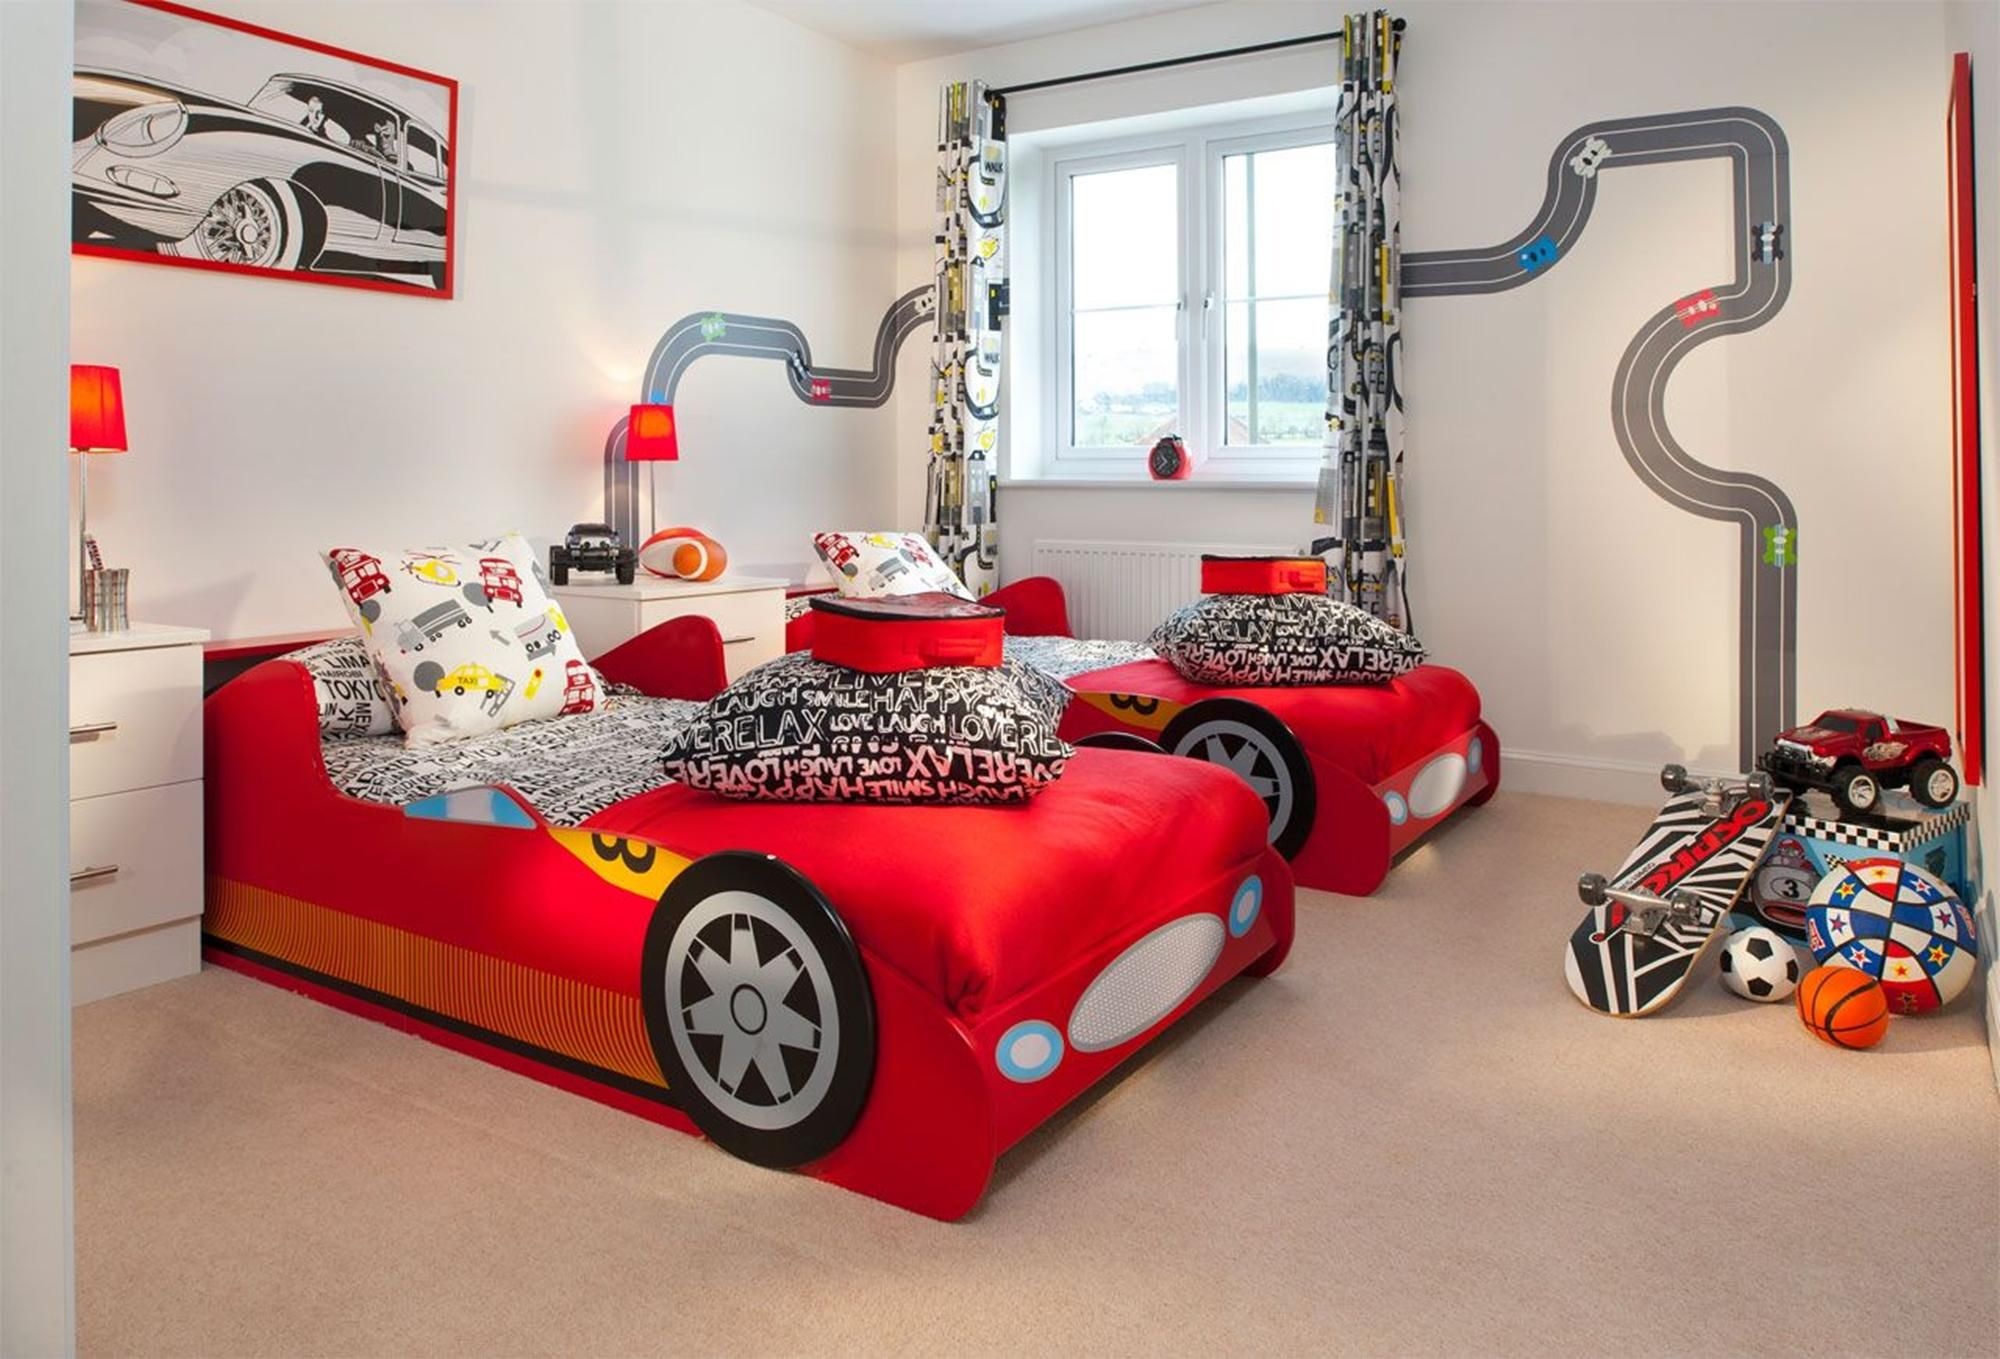 Boys car bedroom babys rooms pinterest boys car for Bedroom ideas for 3 beds